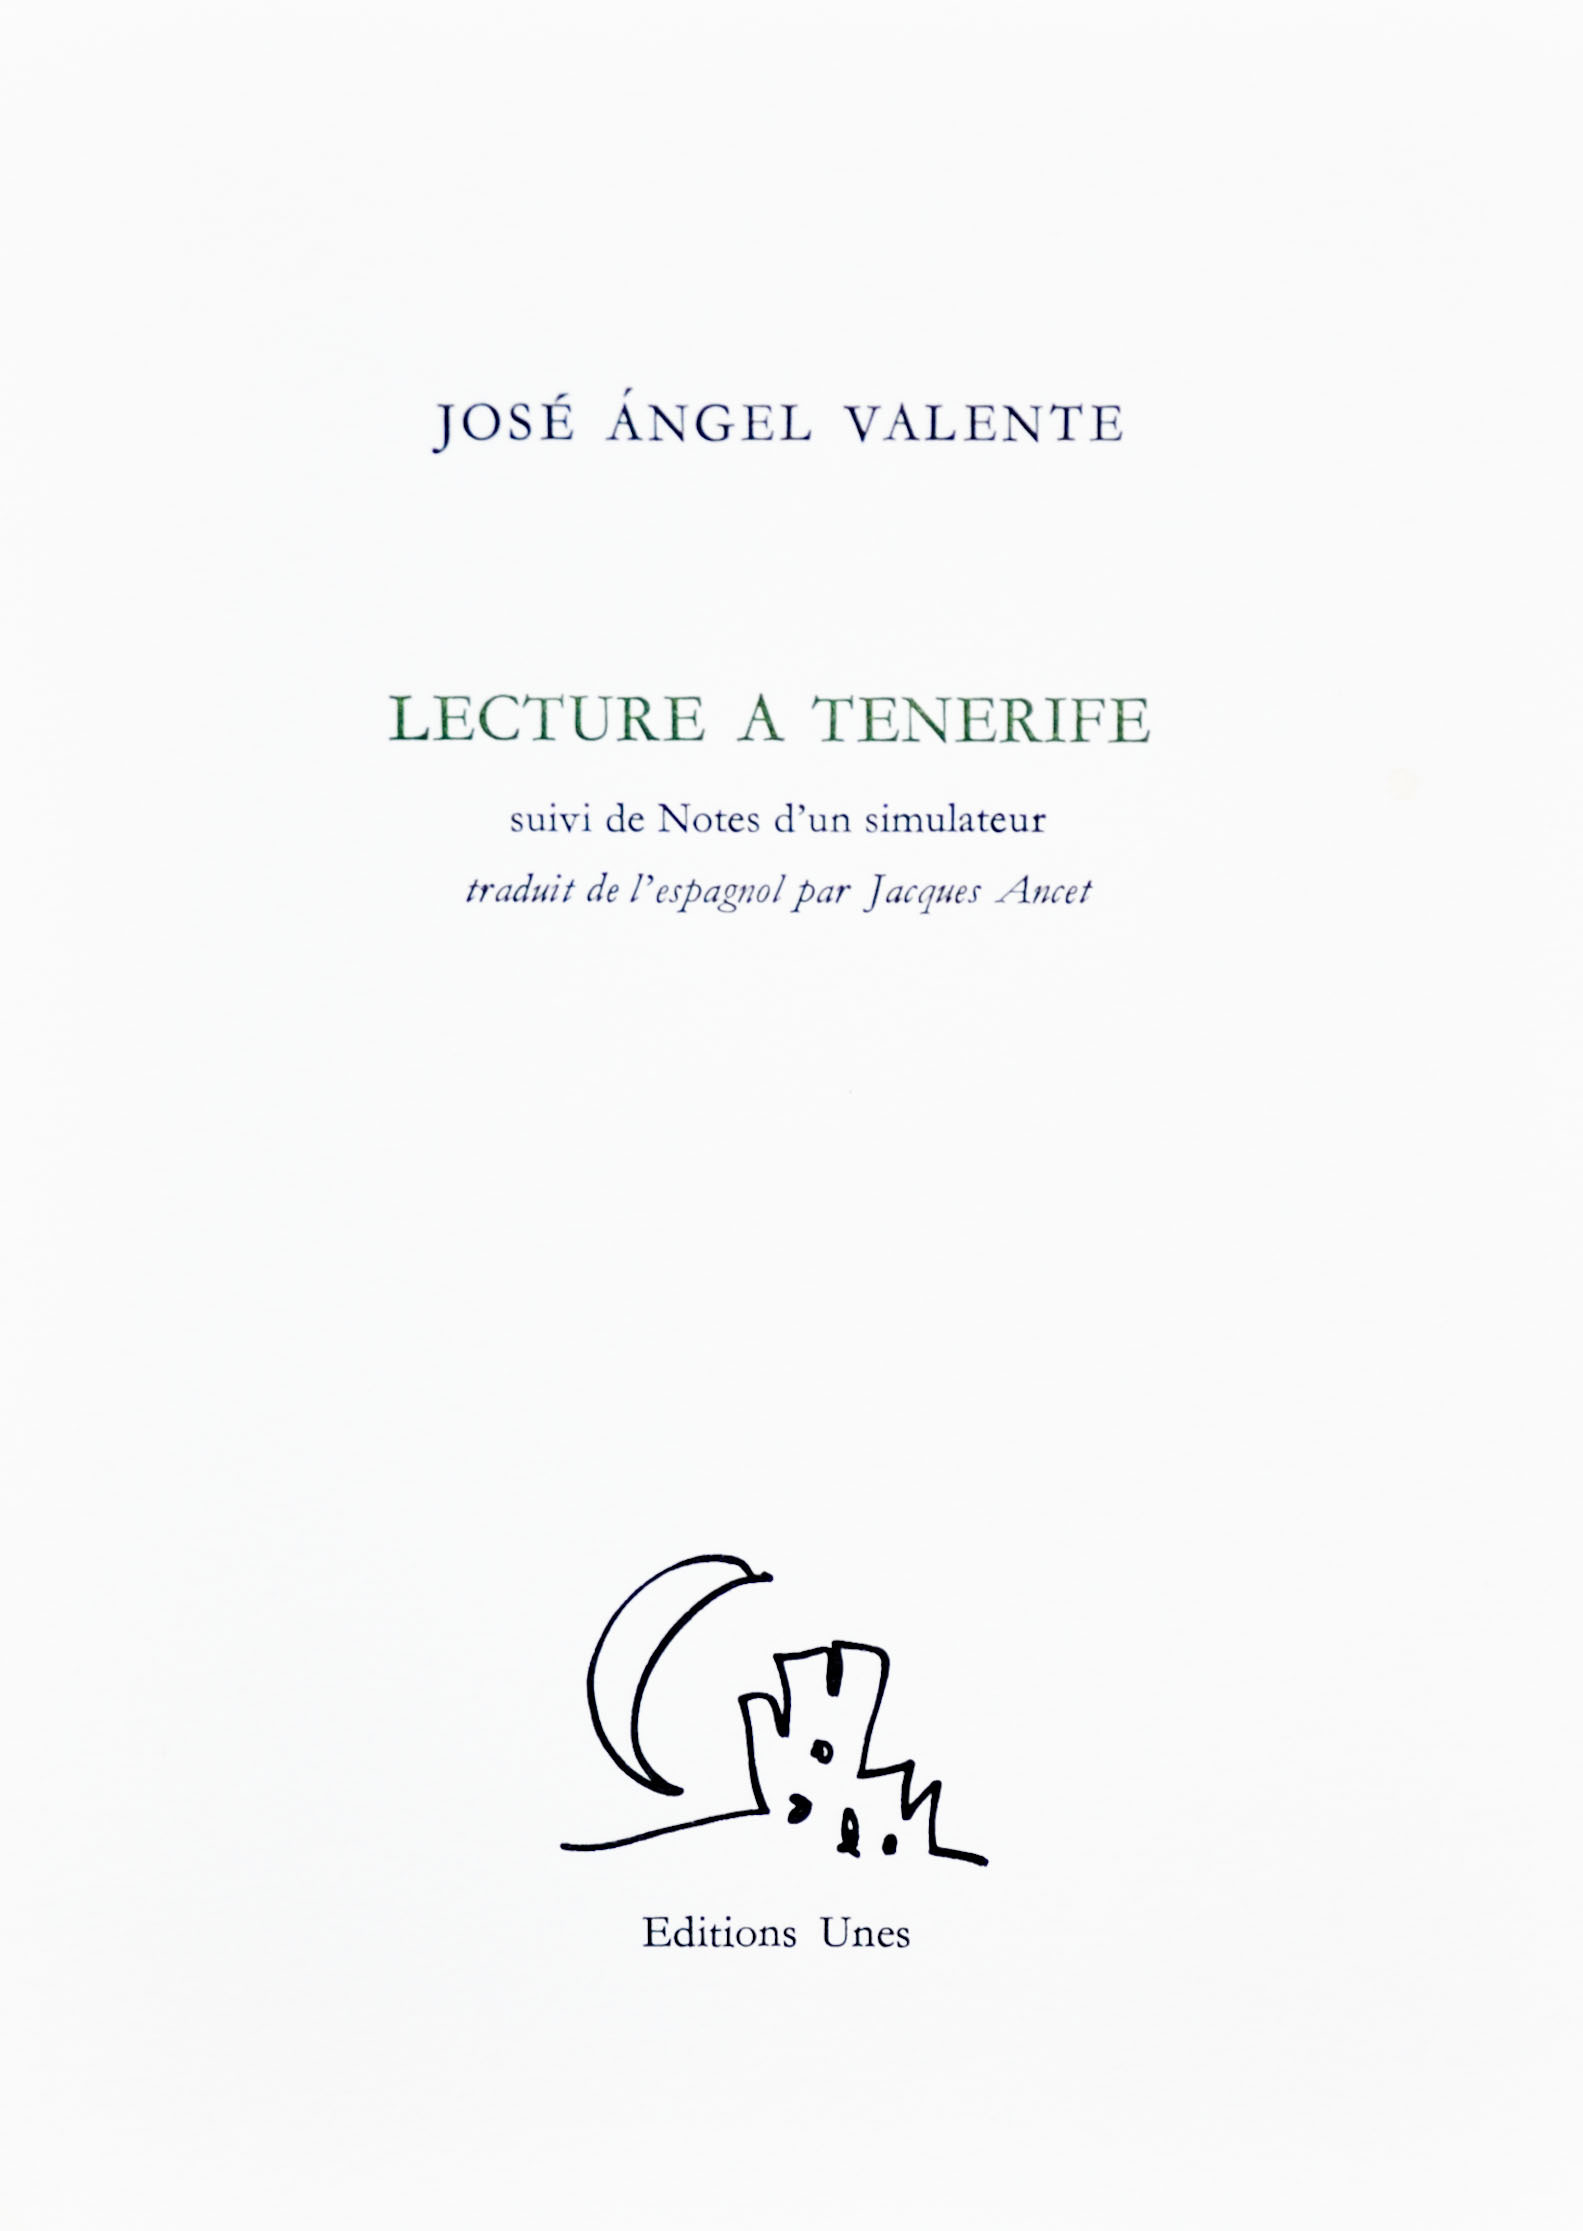 LECTURE A TENERIFE